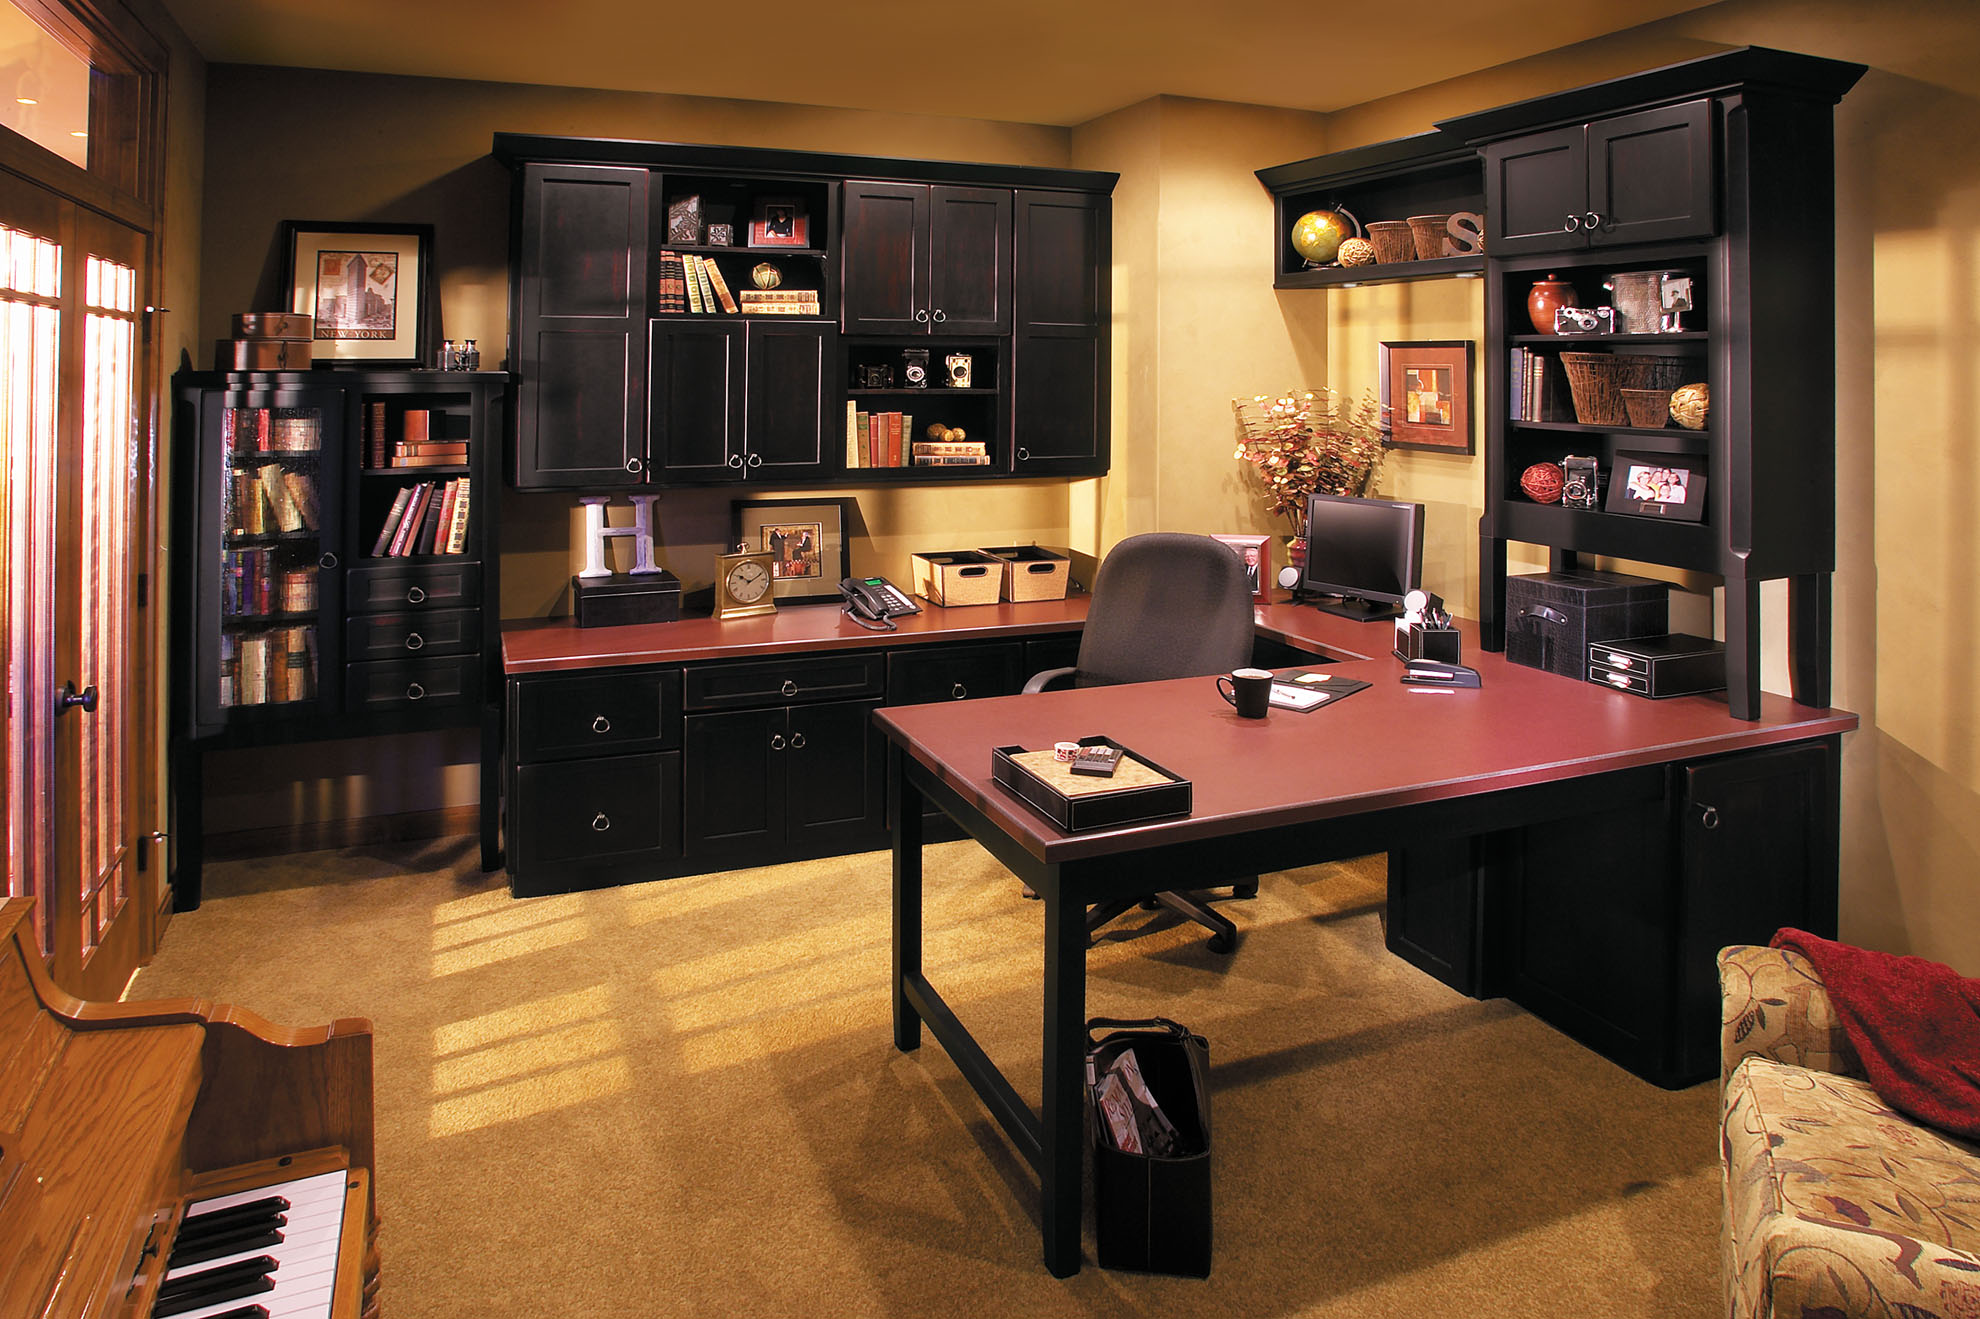 Others Collection Of Excellent Best Home Office Design Ideas